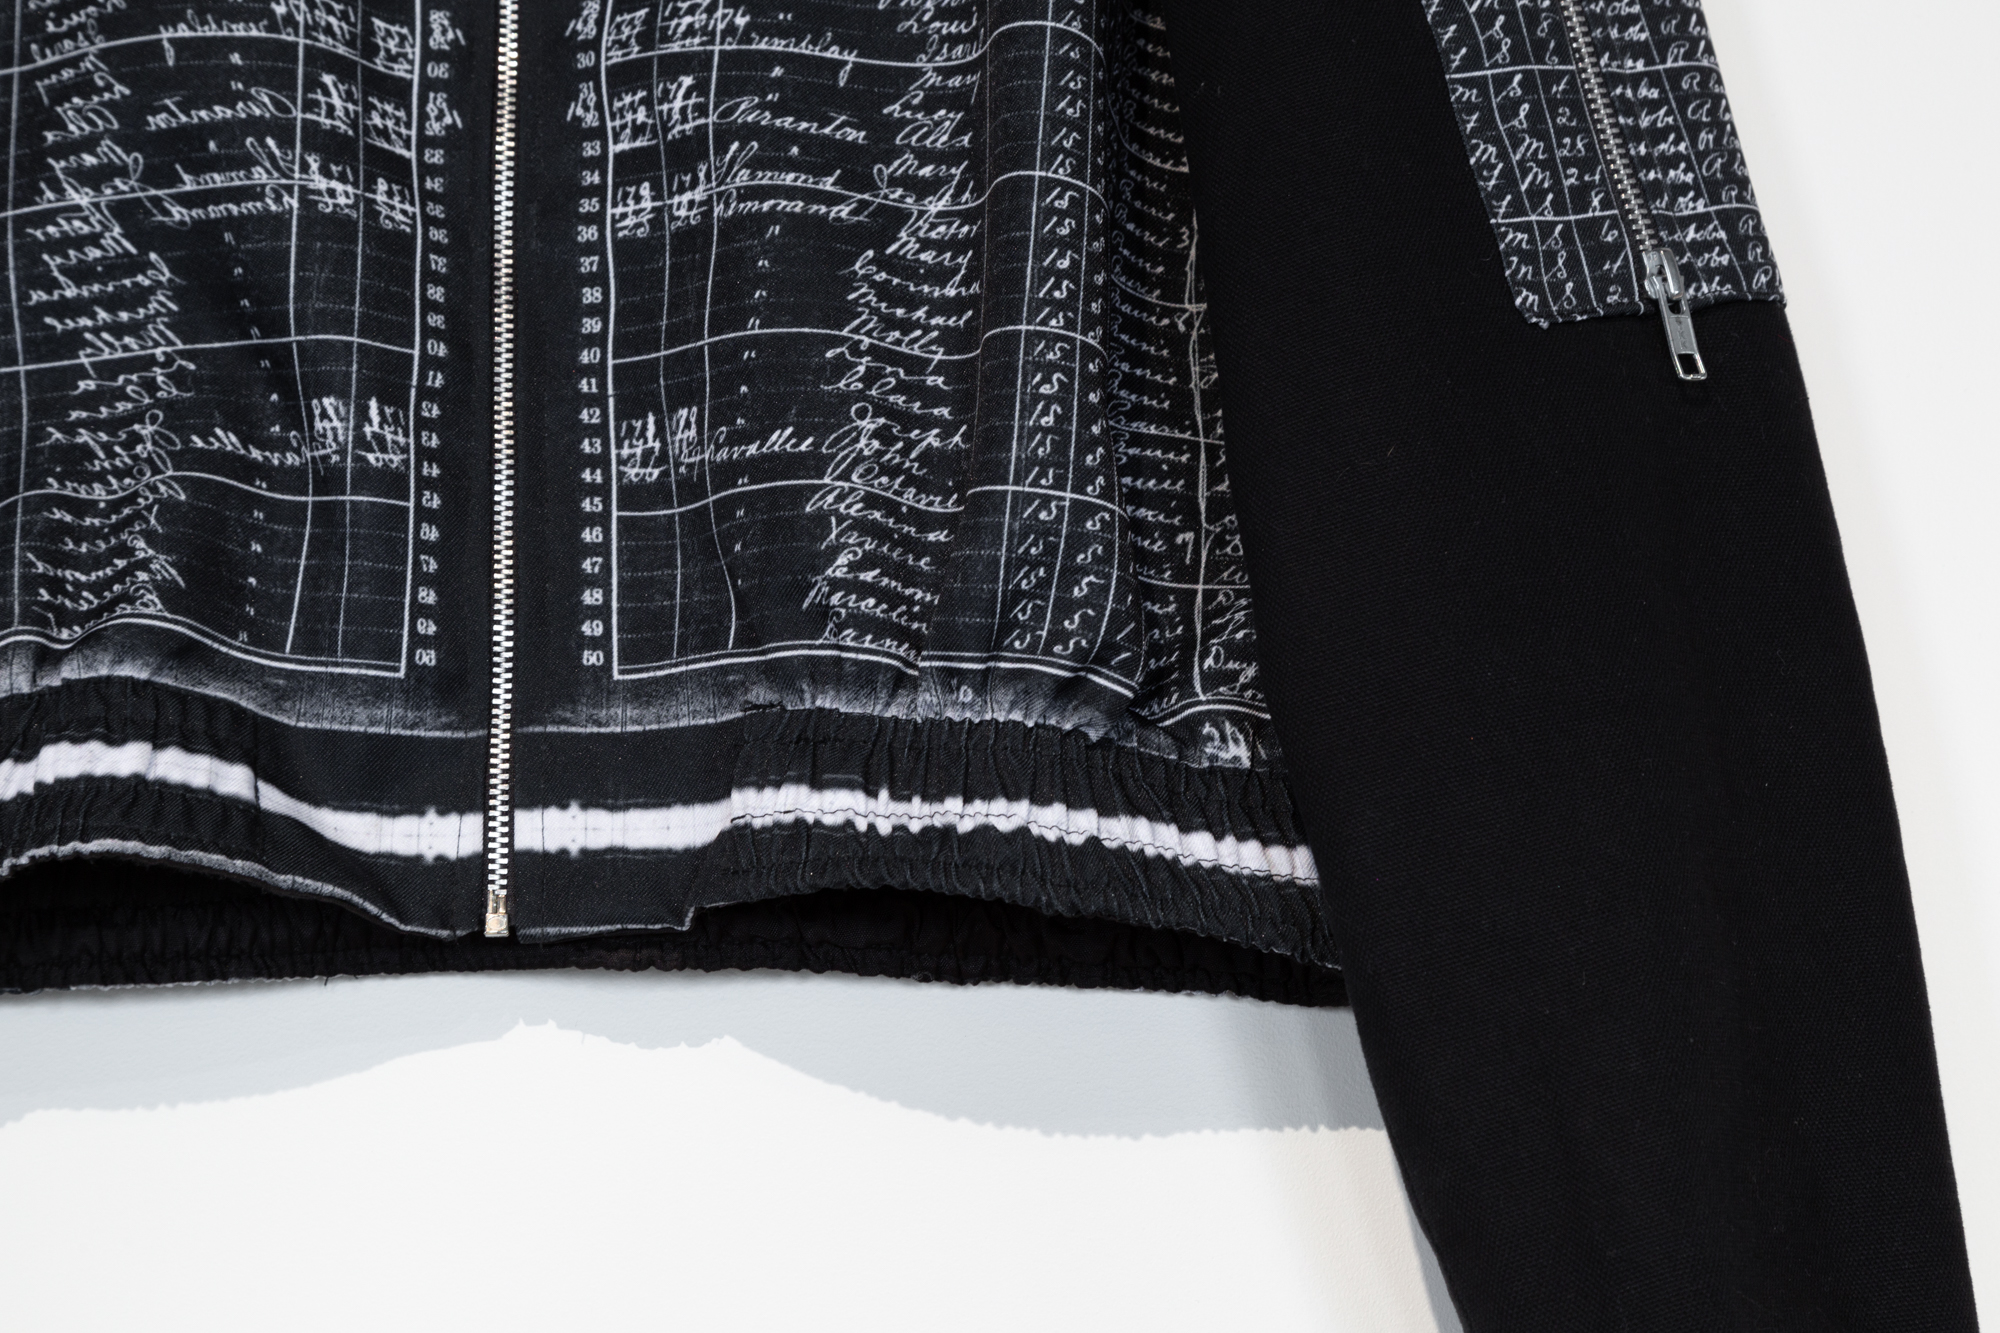 The Census Print Bomber Jacket (detail)